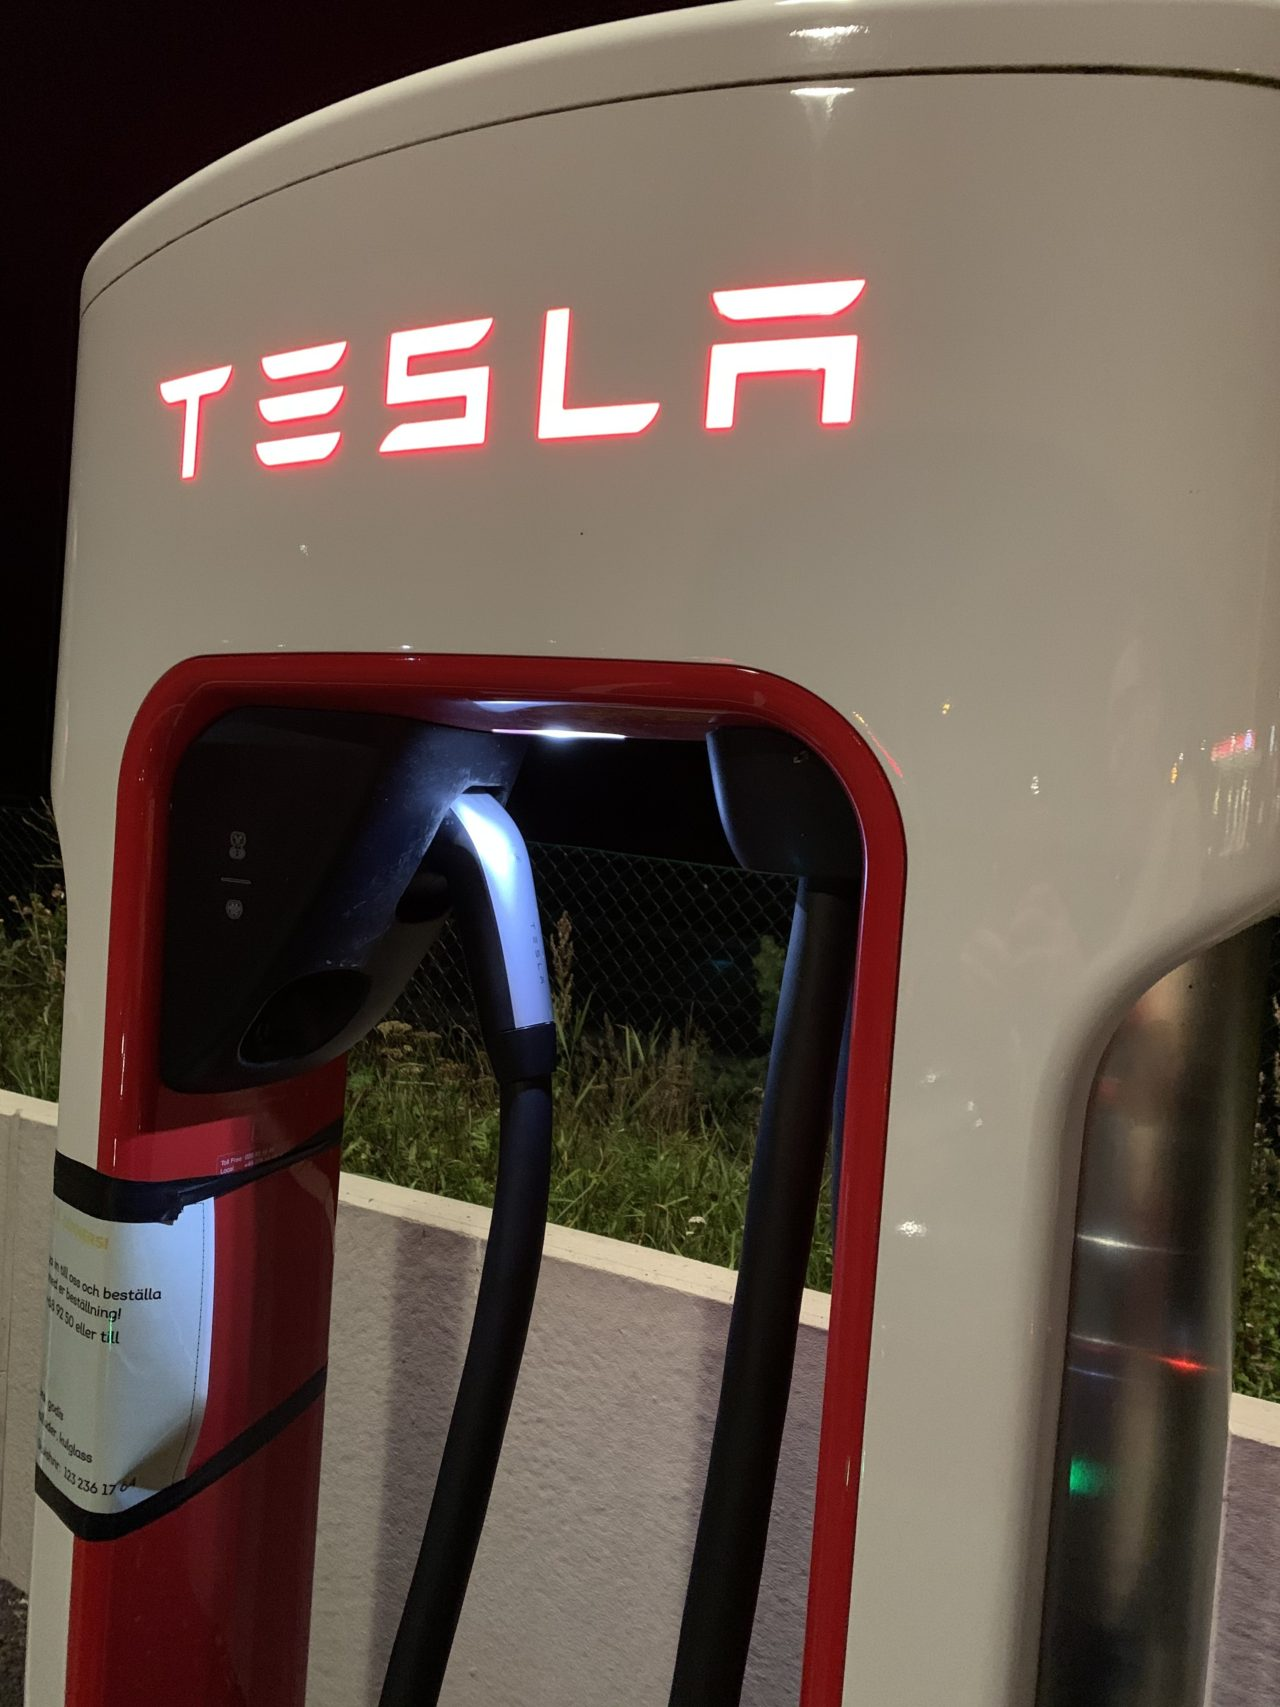 Tesla Supercharger Stall Station Glowing Sign And Charger Cord